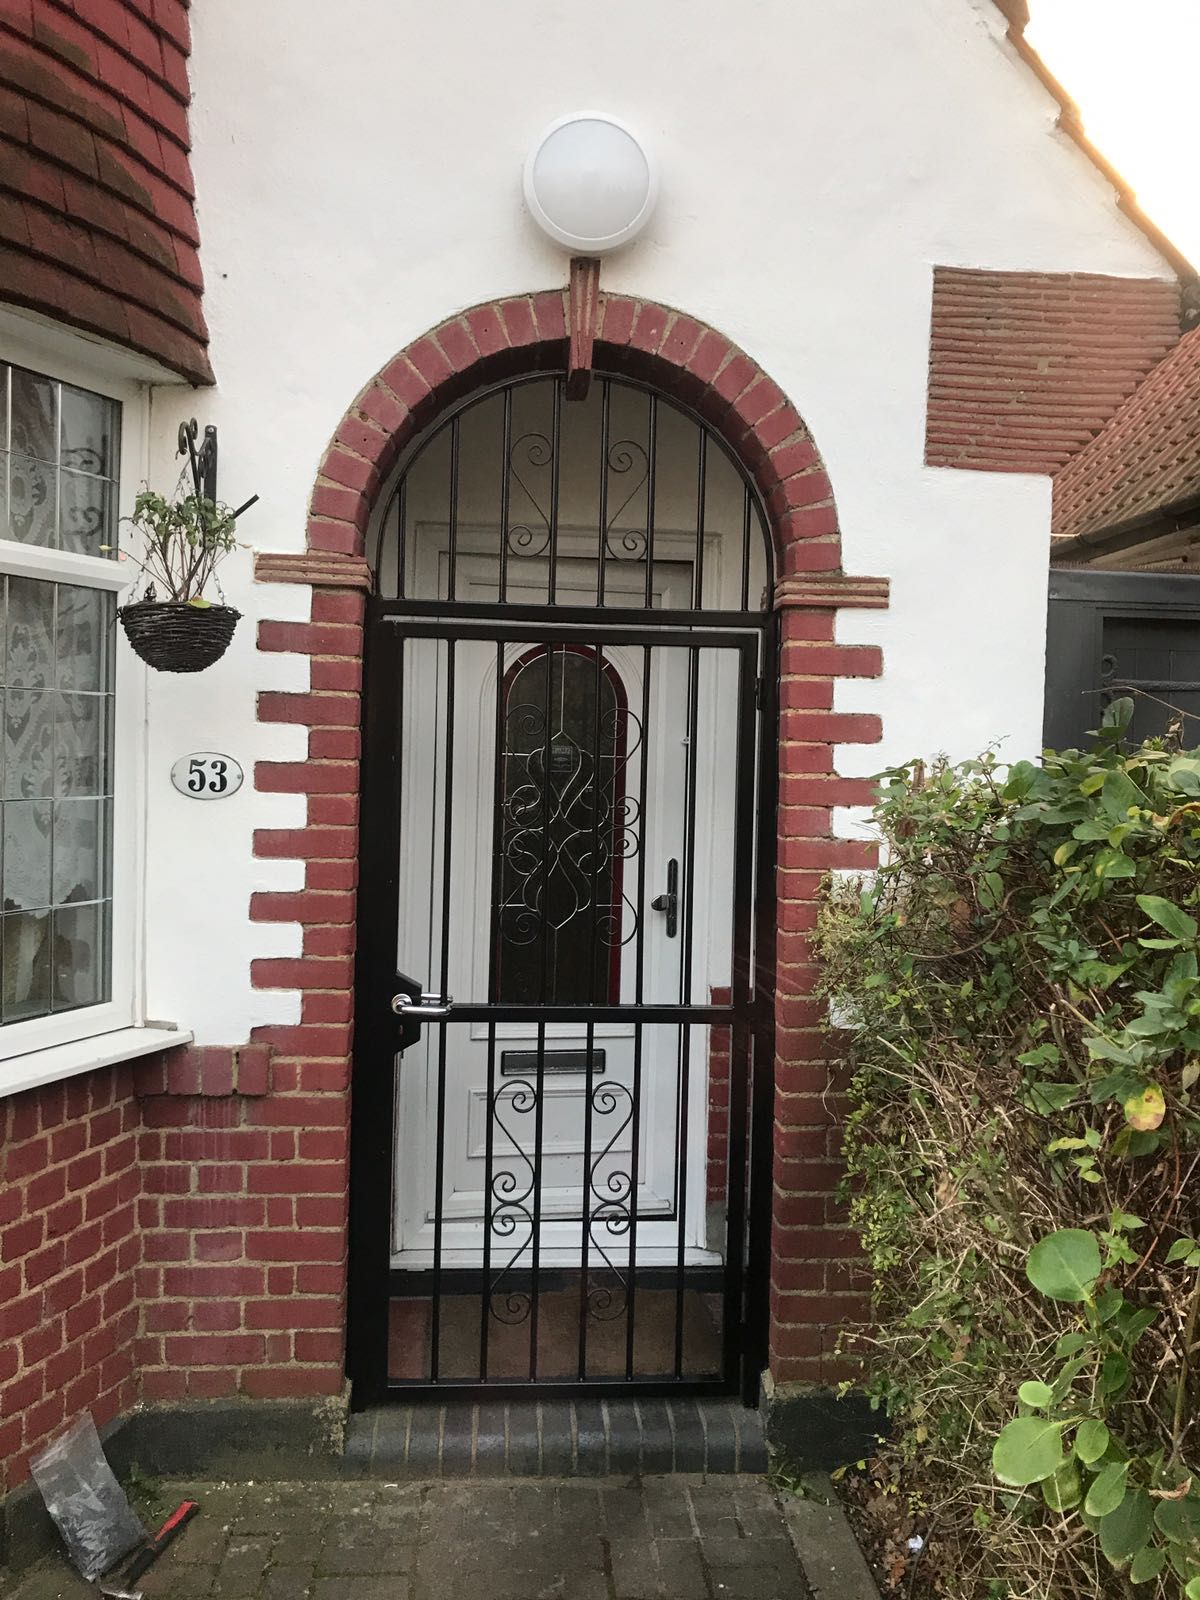 Our RSG3000 Decorative Entrance Gate fitted to the entrance